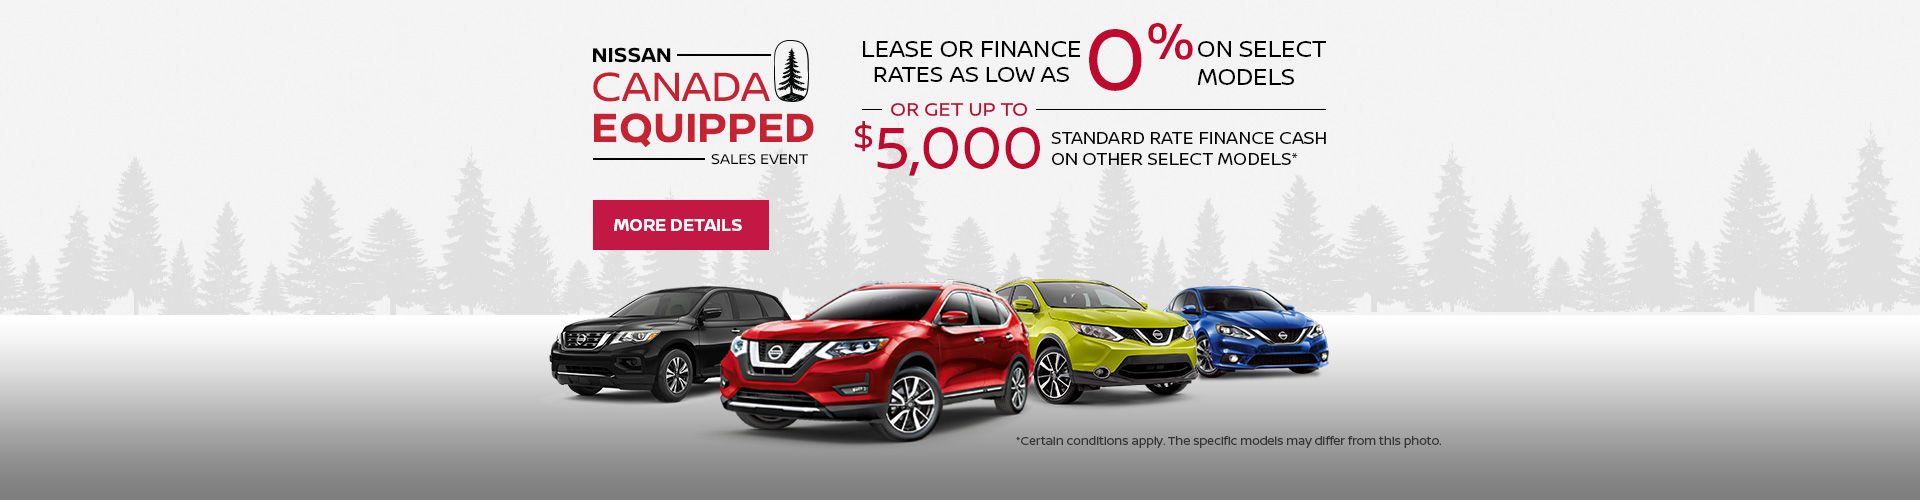 Nissan Canada Equipped Event